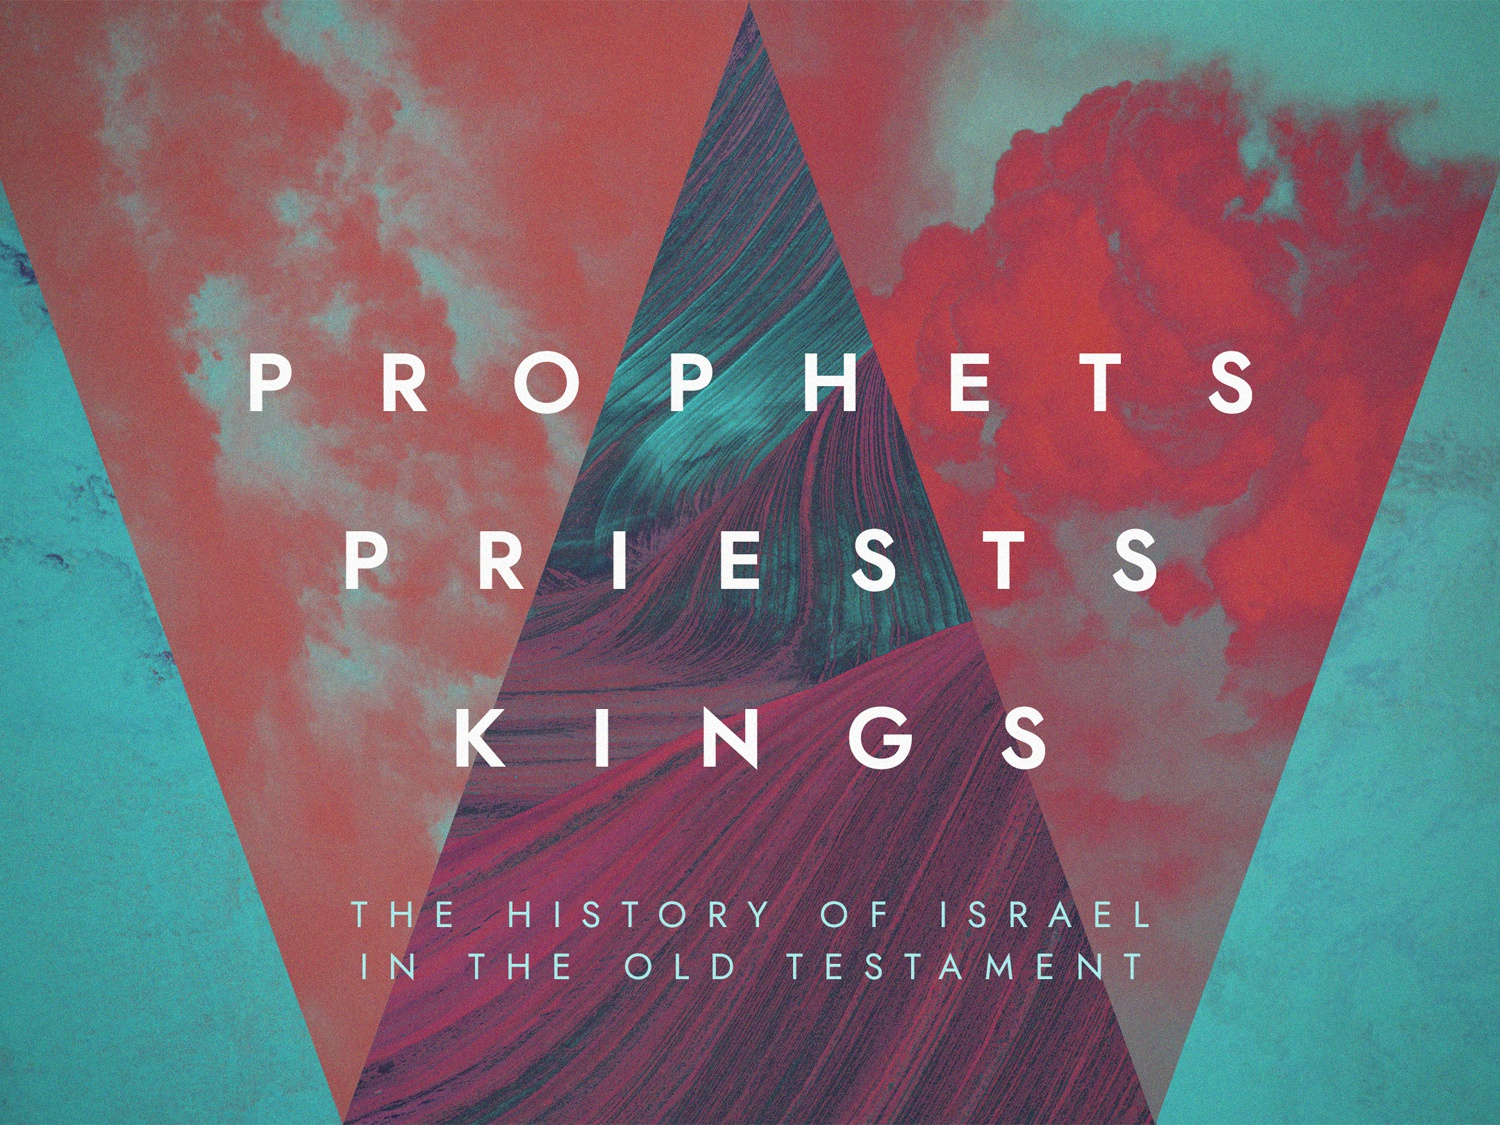 Prophets Priests Kings Series Art sermon title sermon series sermon art sermon series design church design church